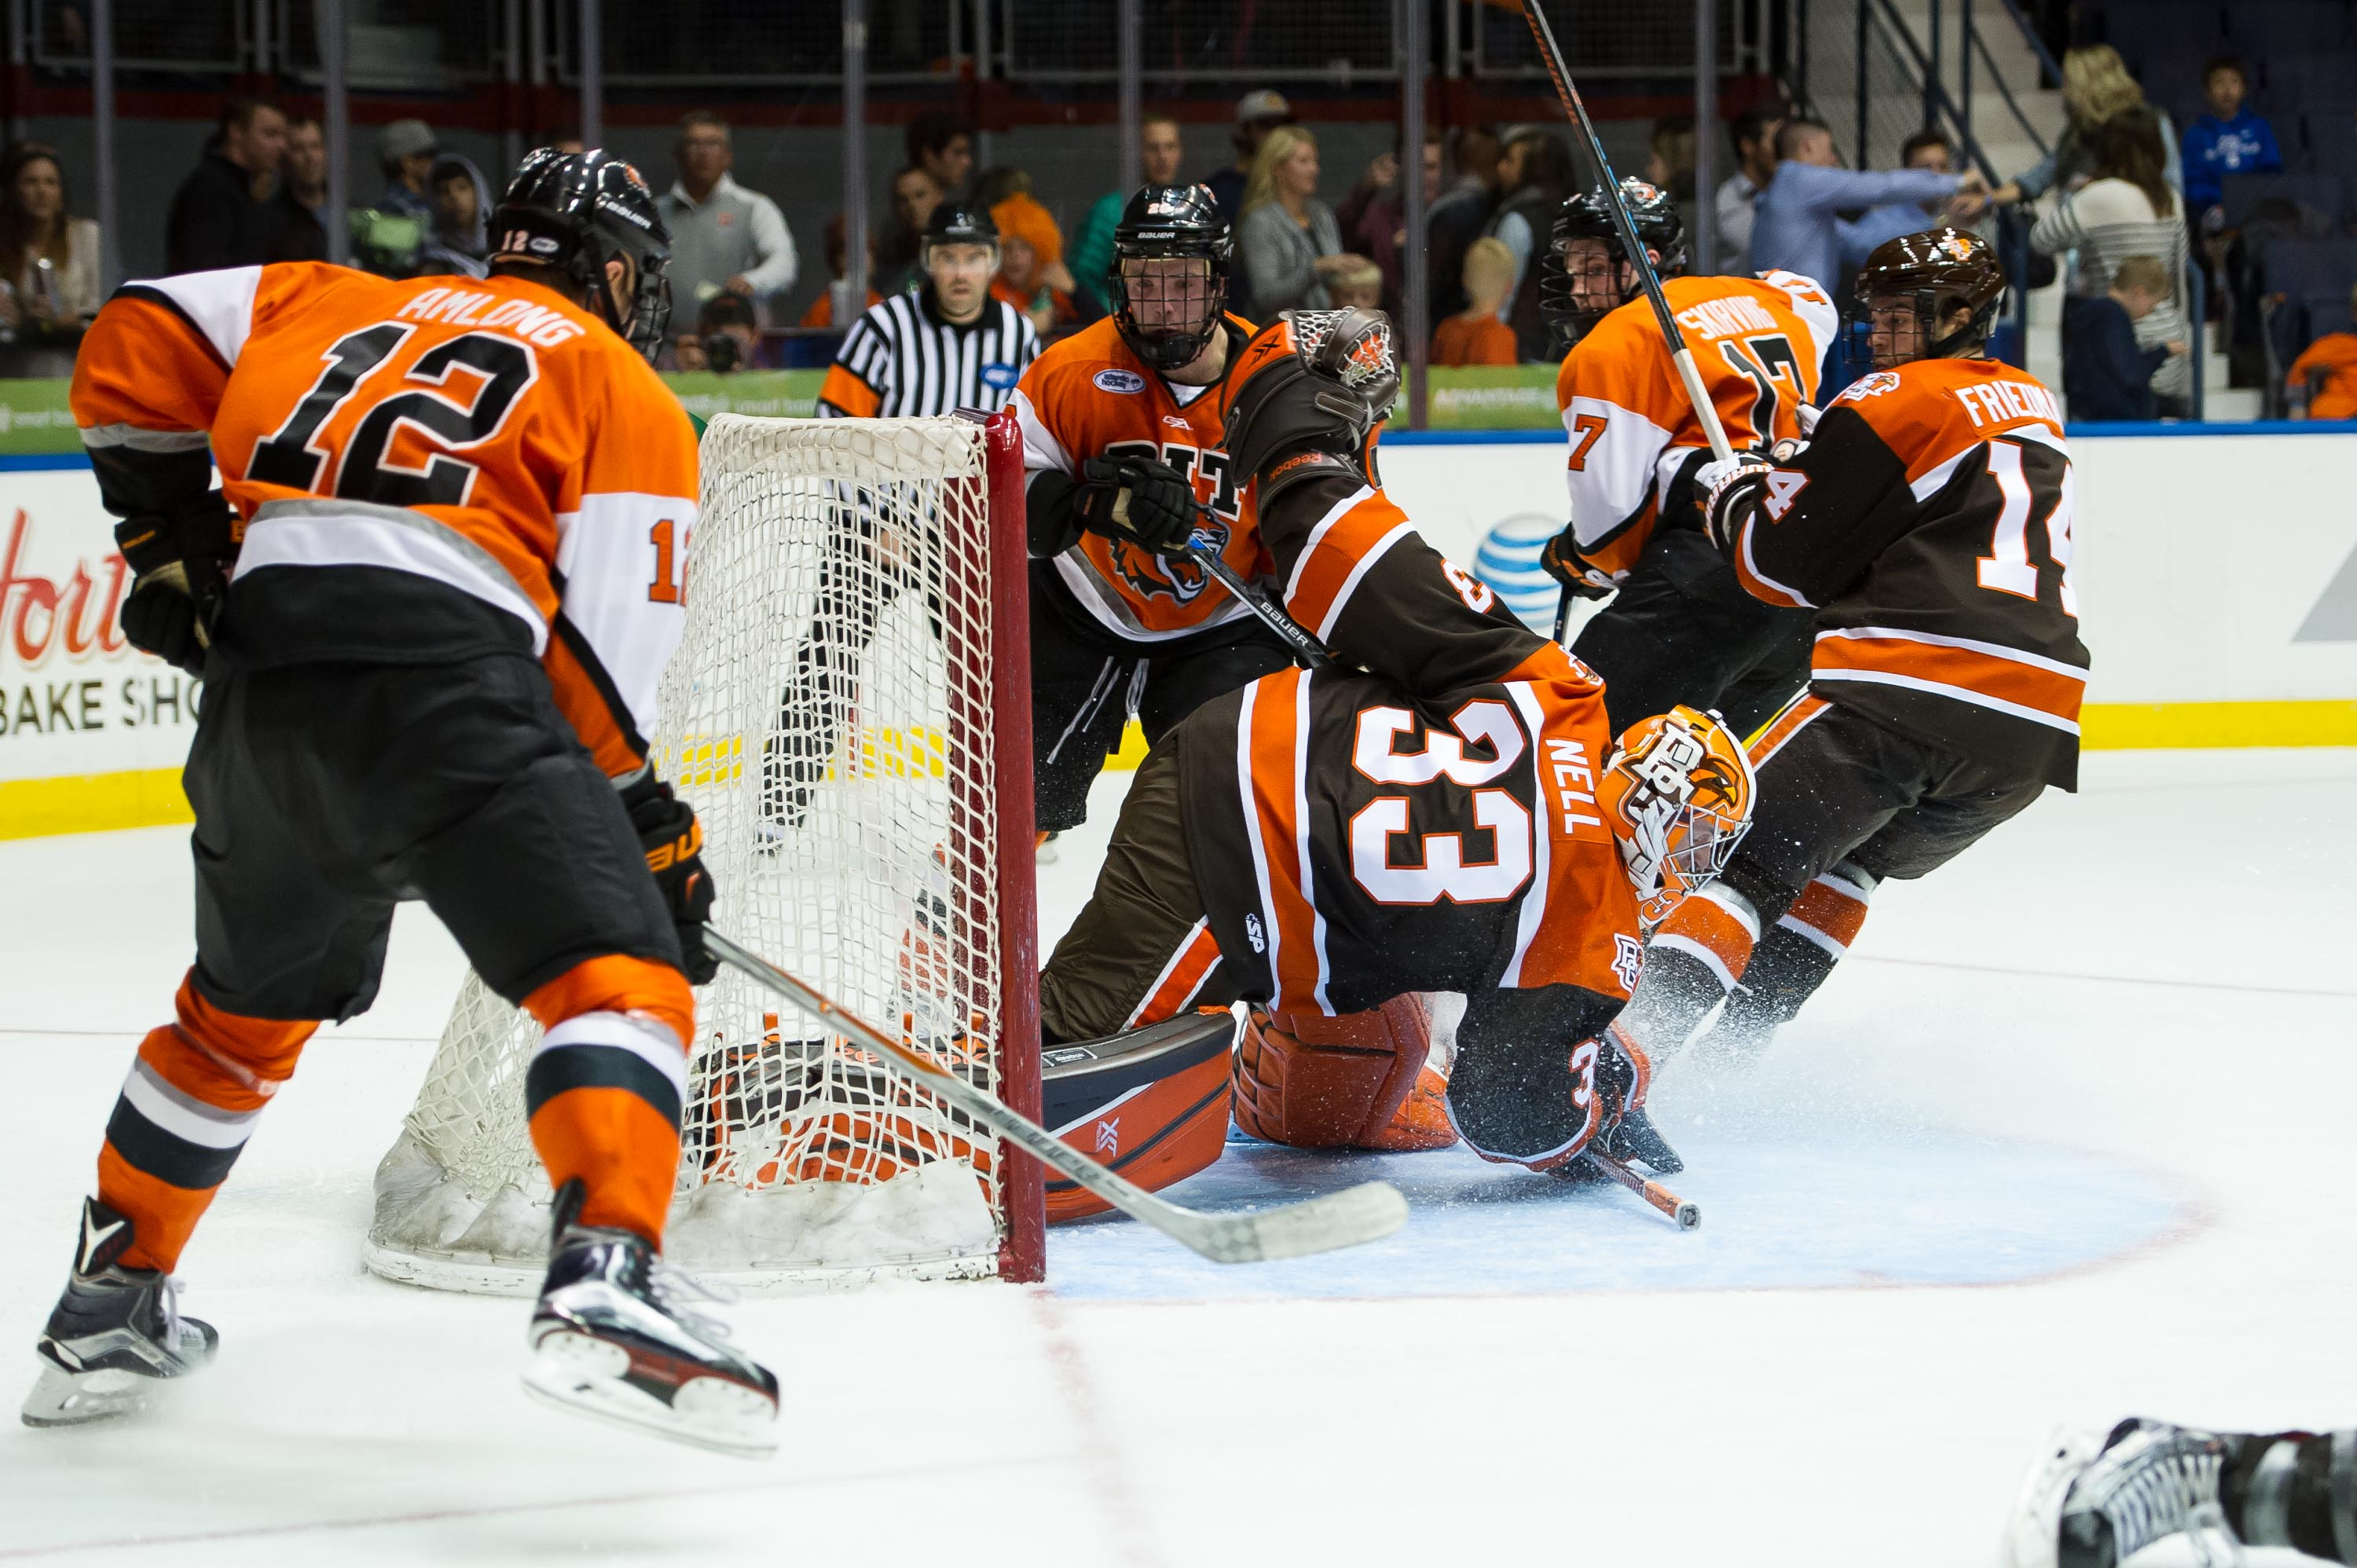 Falcons and Tigers Fight to 2-2 Tie